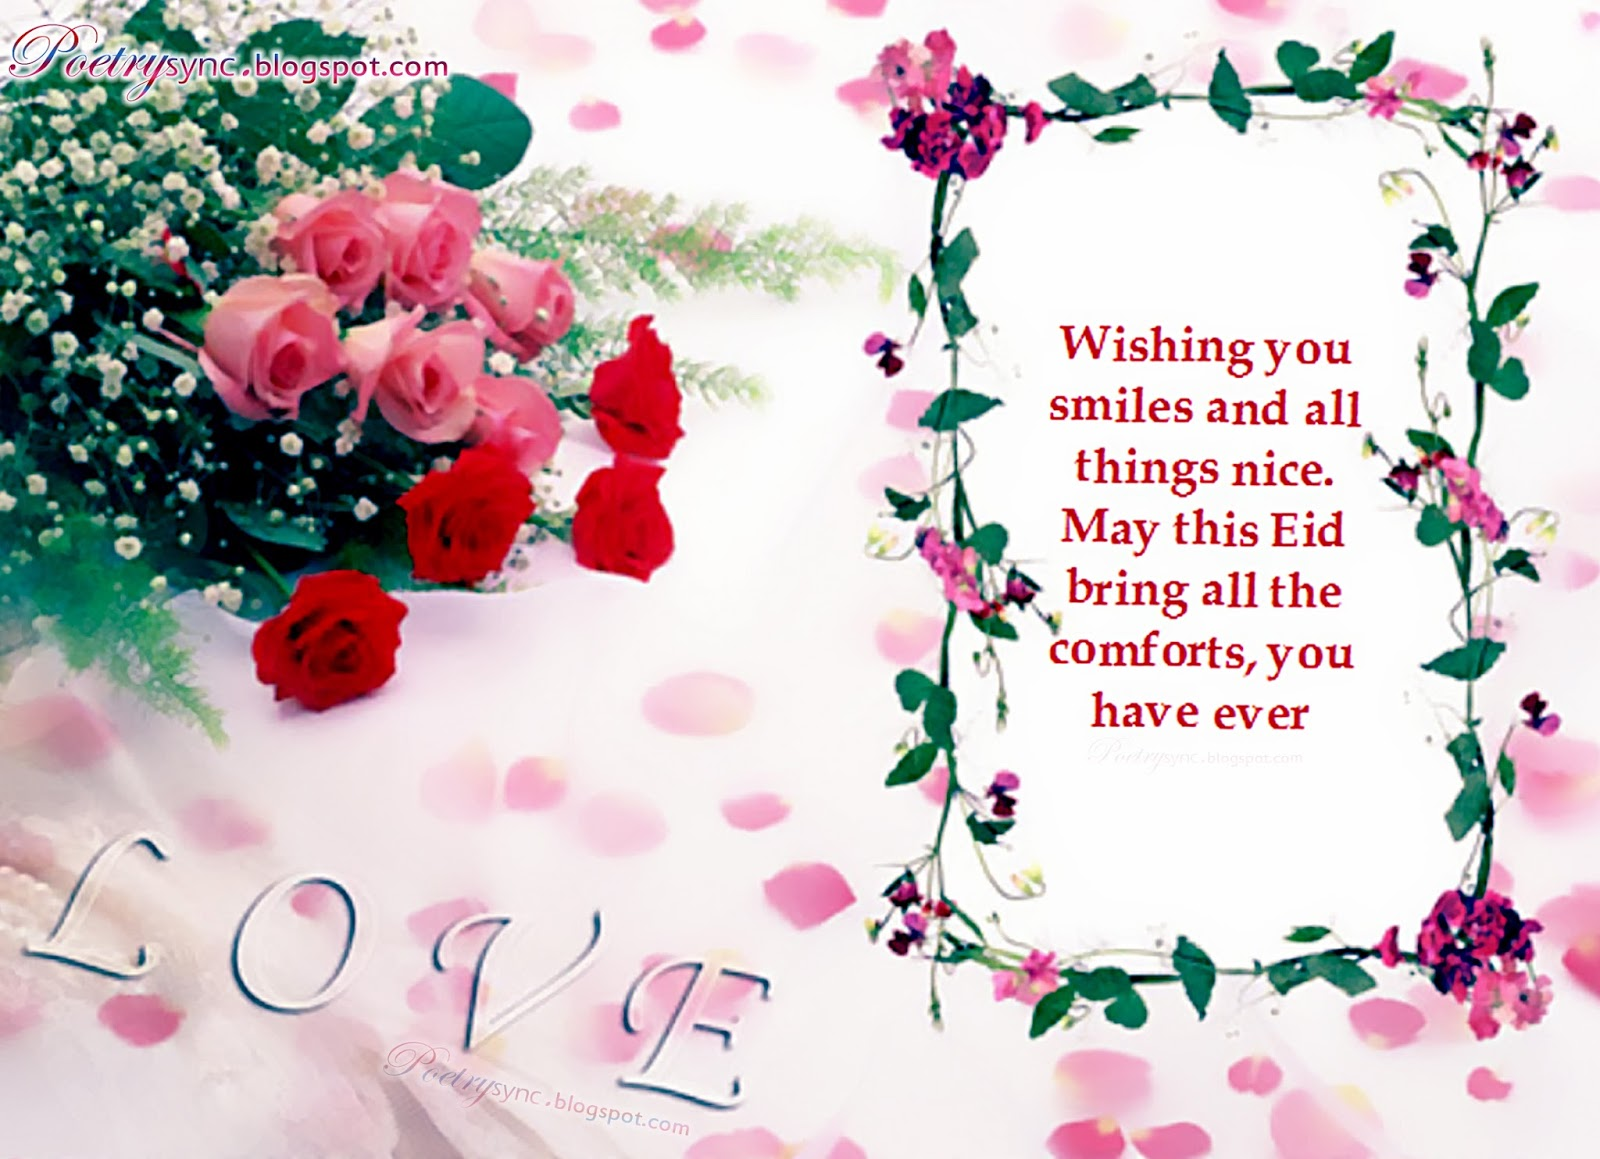 Happy eid mubarak wishes message for lovers with images romantic happy eid mubarak wishes message for lovers with kristyandbryce Gallery